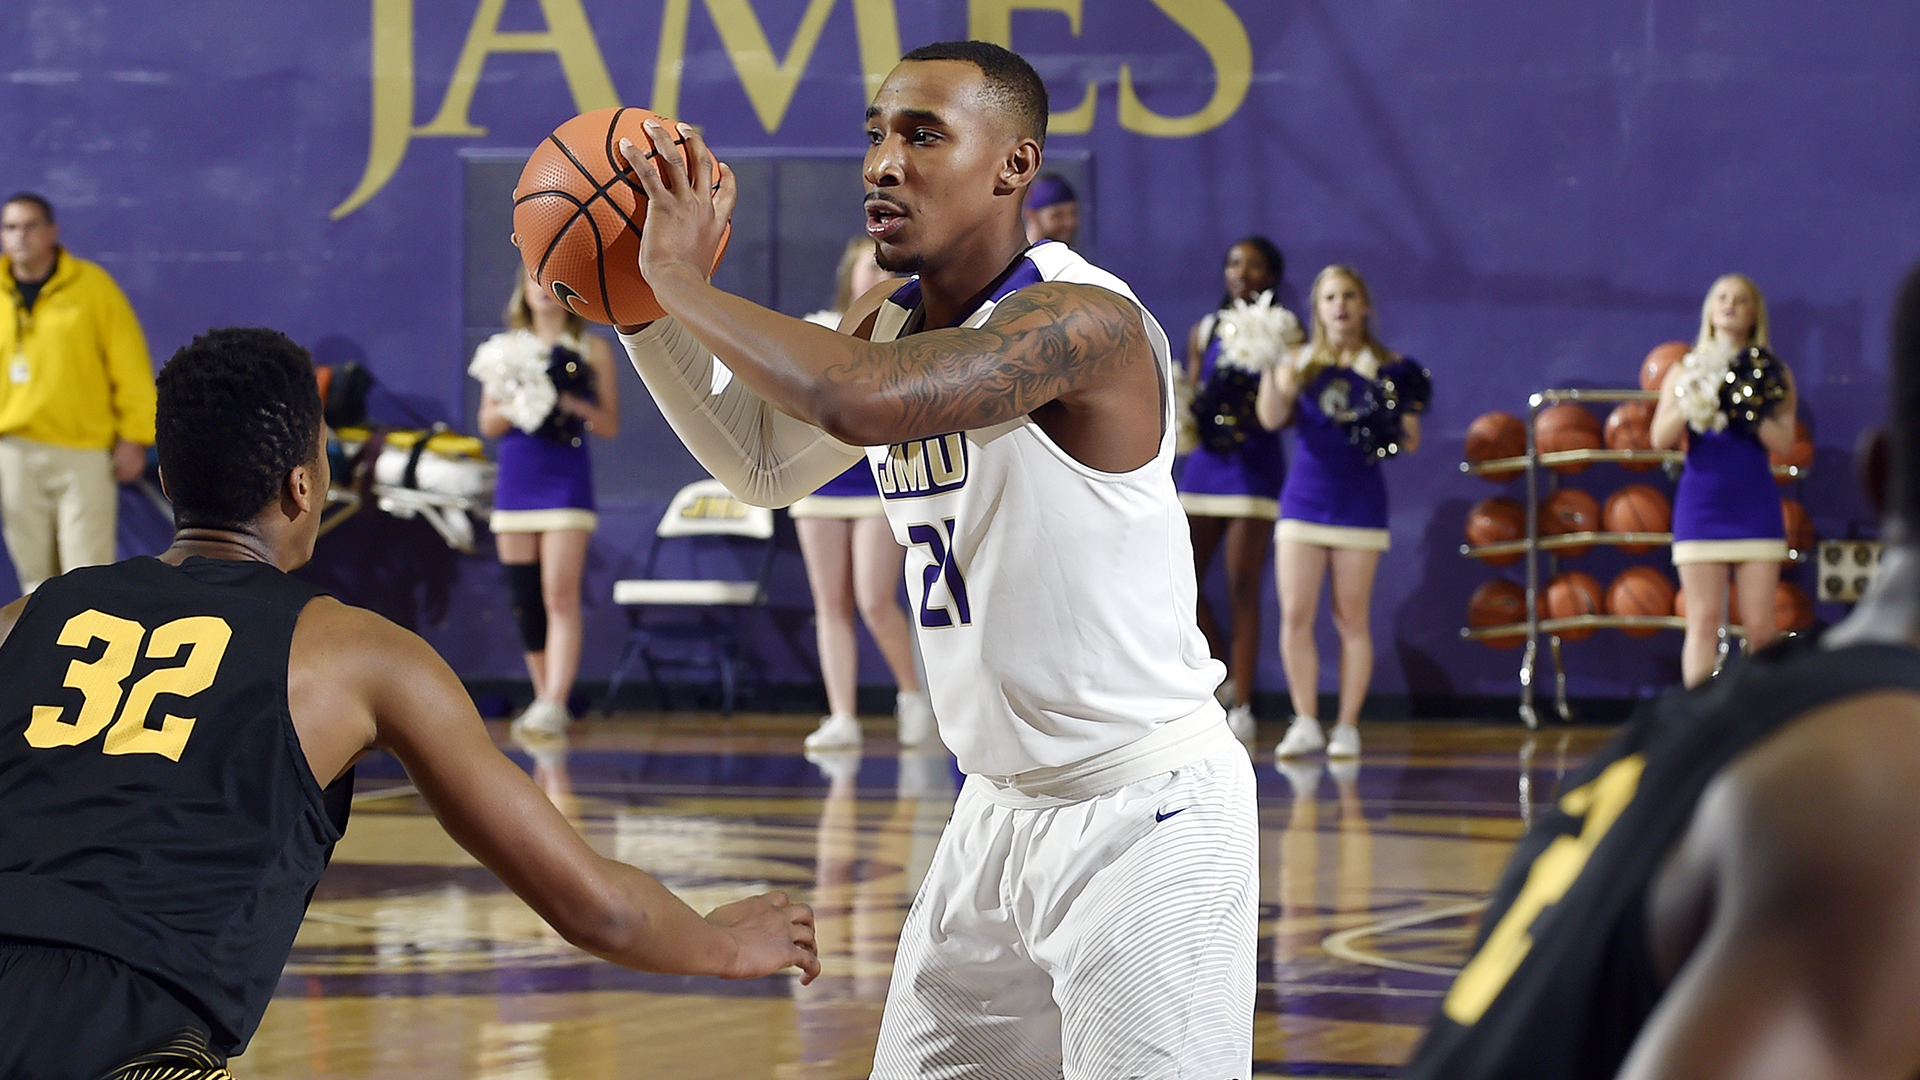 Men's Basketball: Mosley, Dukes Pull Away from FIU Late)